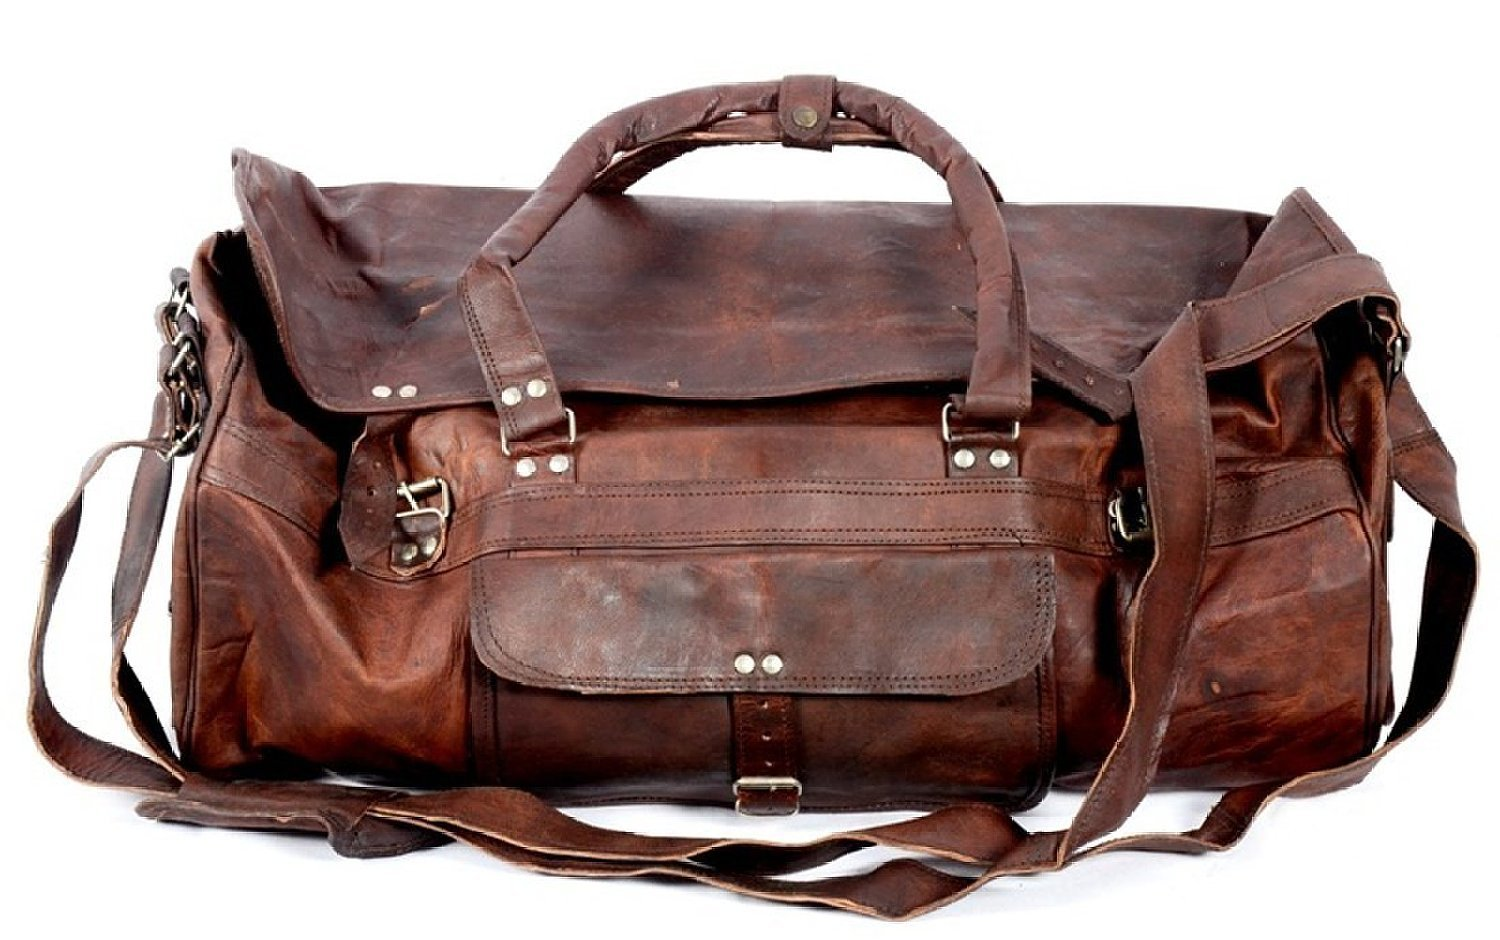 QualityArt 28 Large Leather HUGE Travel Bag Large Duffel bag Gym sports flight cabin bag Leather Holdall Overnight Weekend Duffel Large duffel bag Long Holiday Bag Sports Duffel